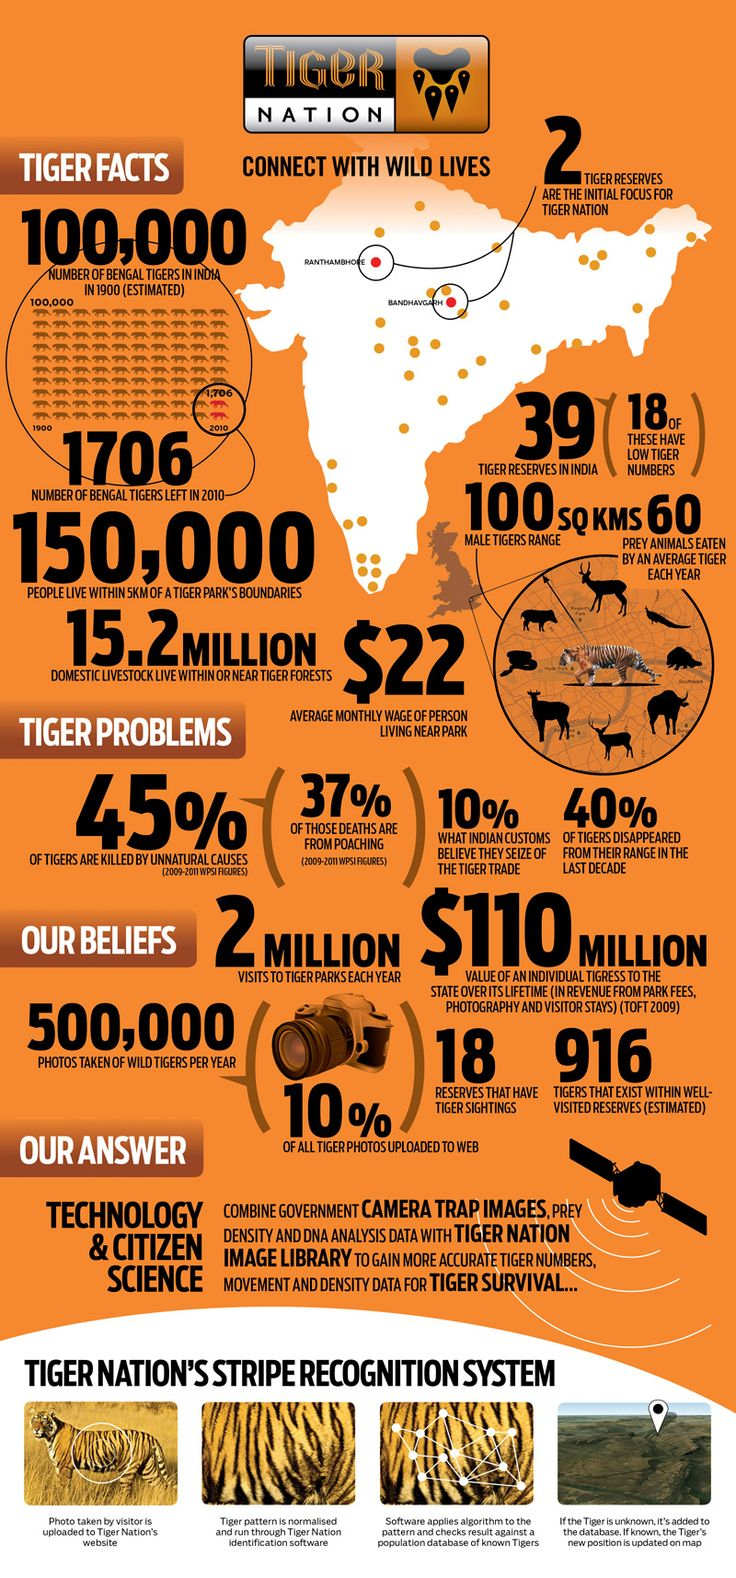 Take a look at the statistics related to Tigers in India, I am supporting Tiger Nation, Please lend your support to this website too